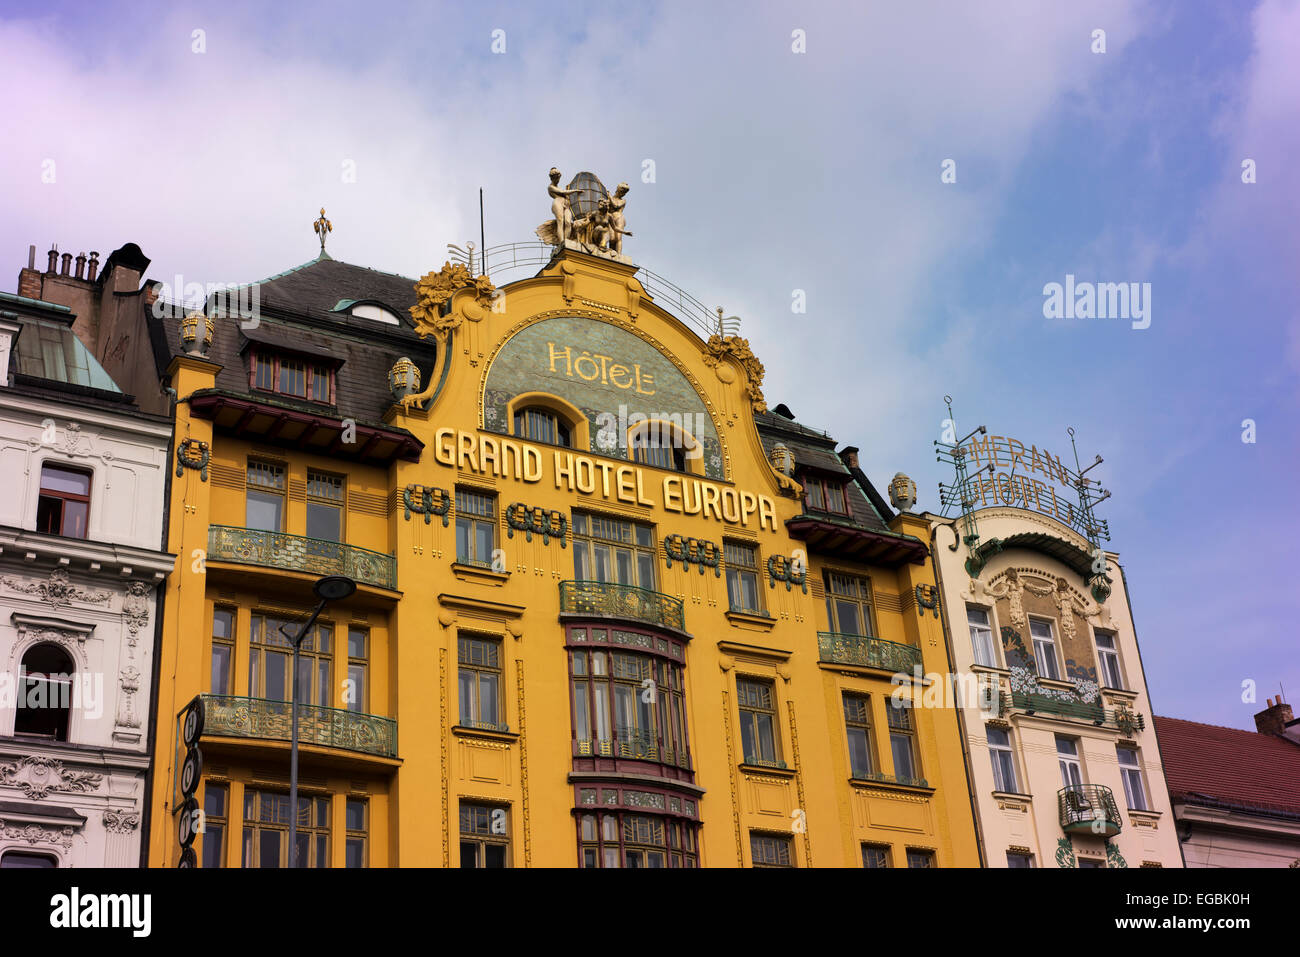 The Grand Hotel Europa in Prague's New Town, on Wenceslas Square. - Stock Image